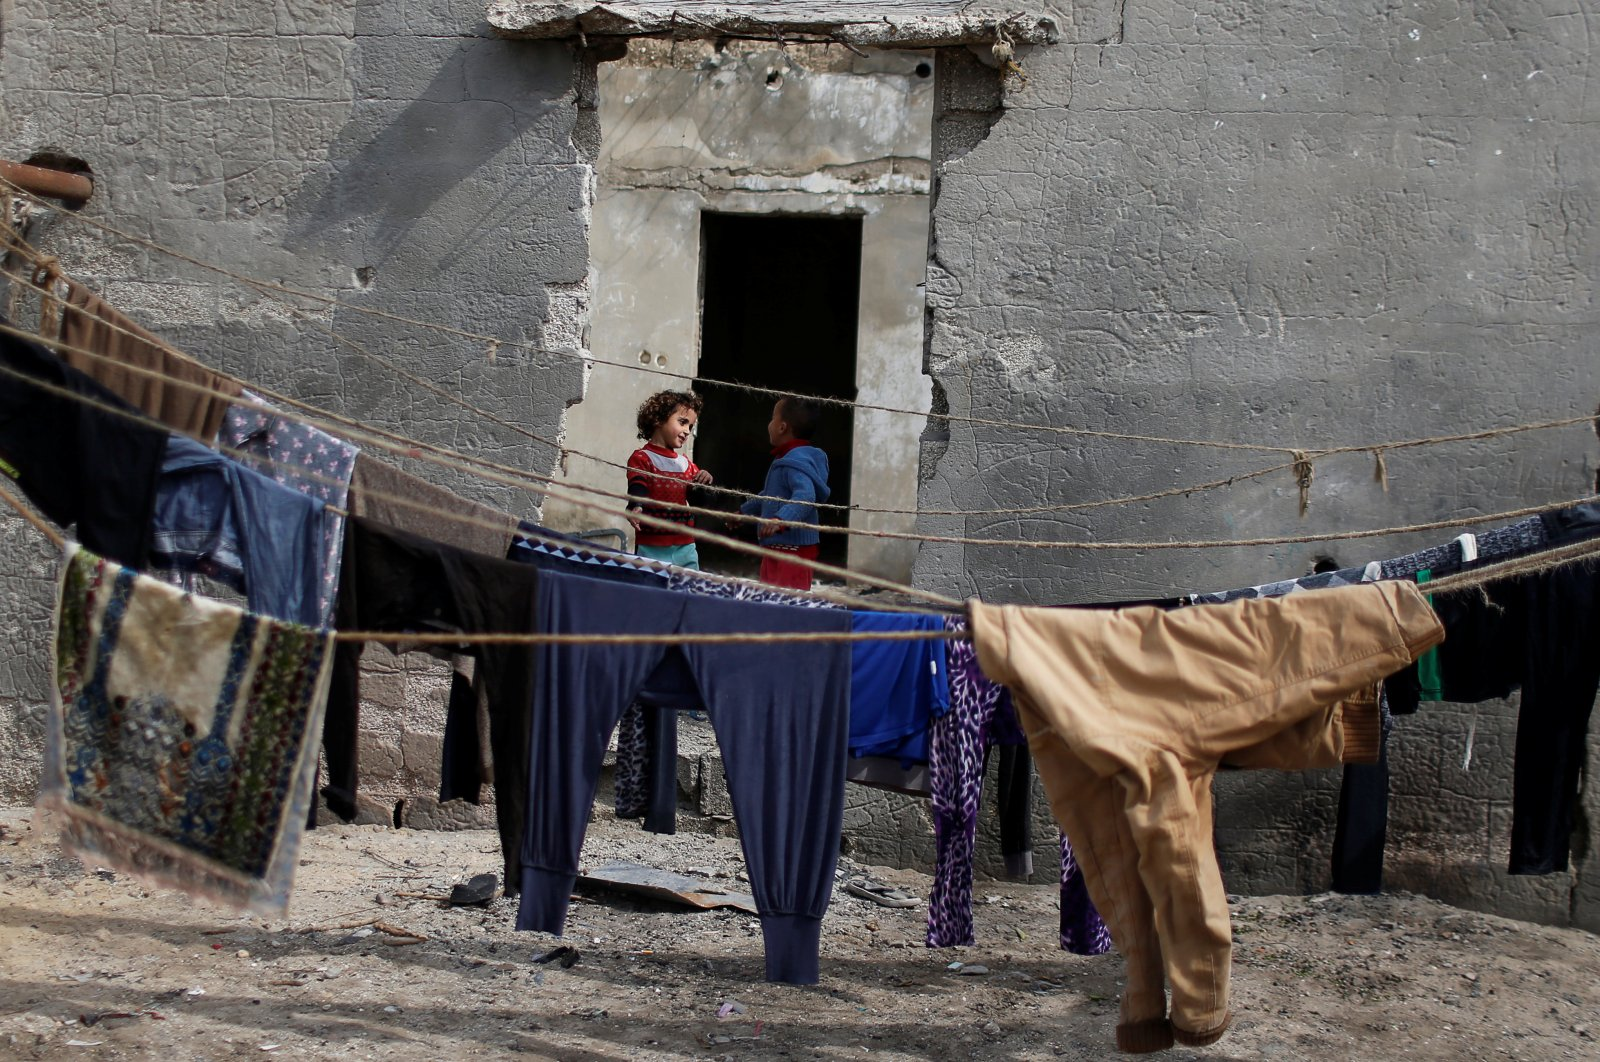 Palestinian children stand outside their house as laundry hangs on ropes at Shati refugee camp in Gaza city, Palestine, Feb. 19, 2020. (Reuters Photo)